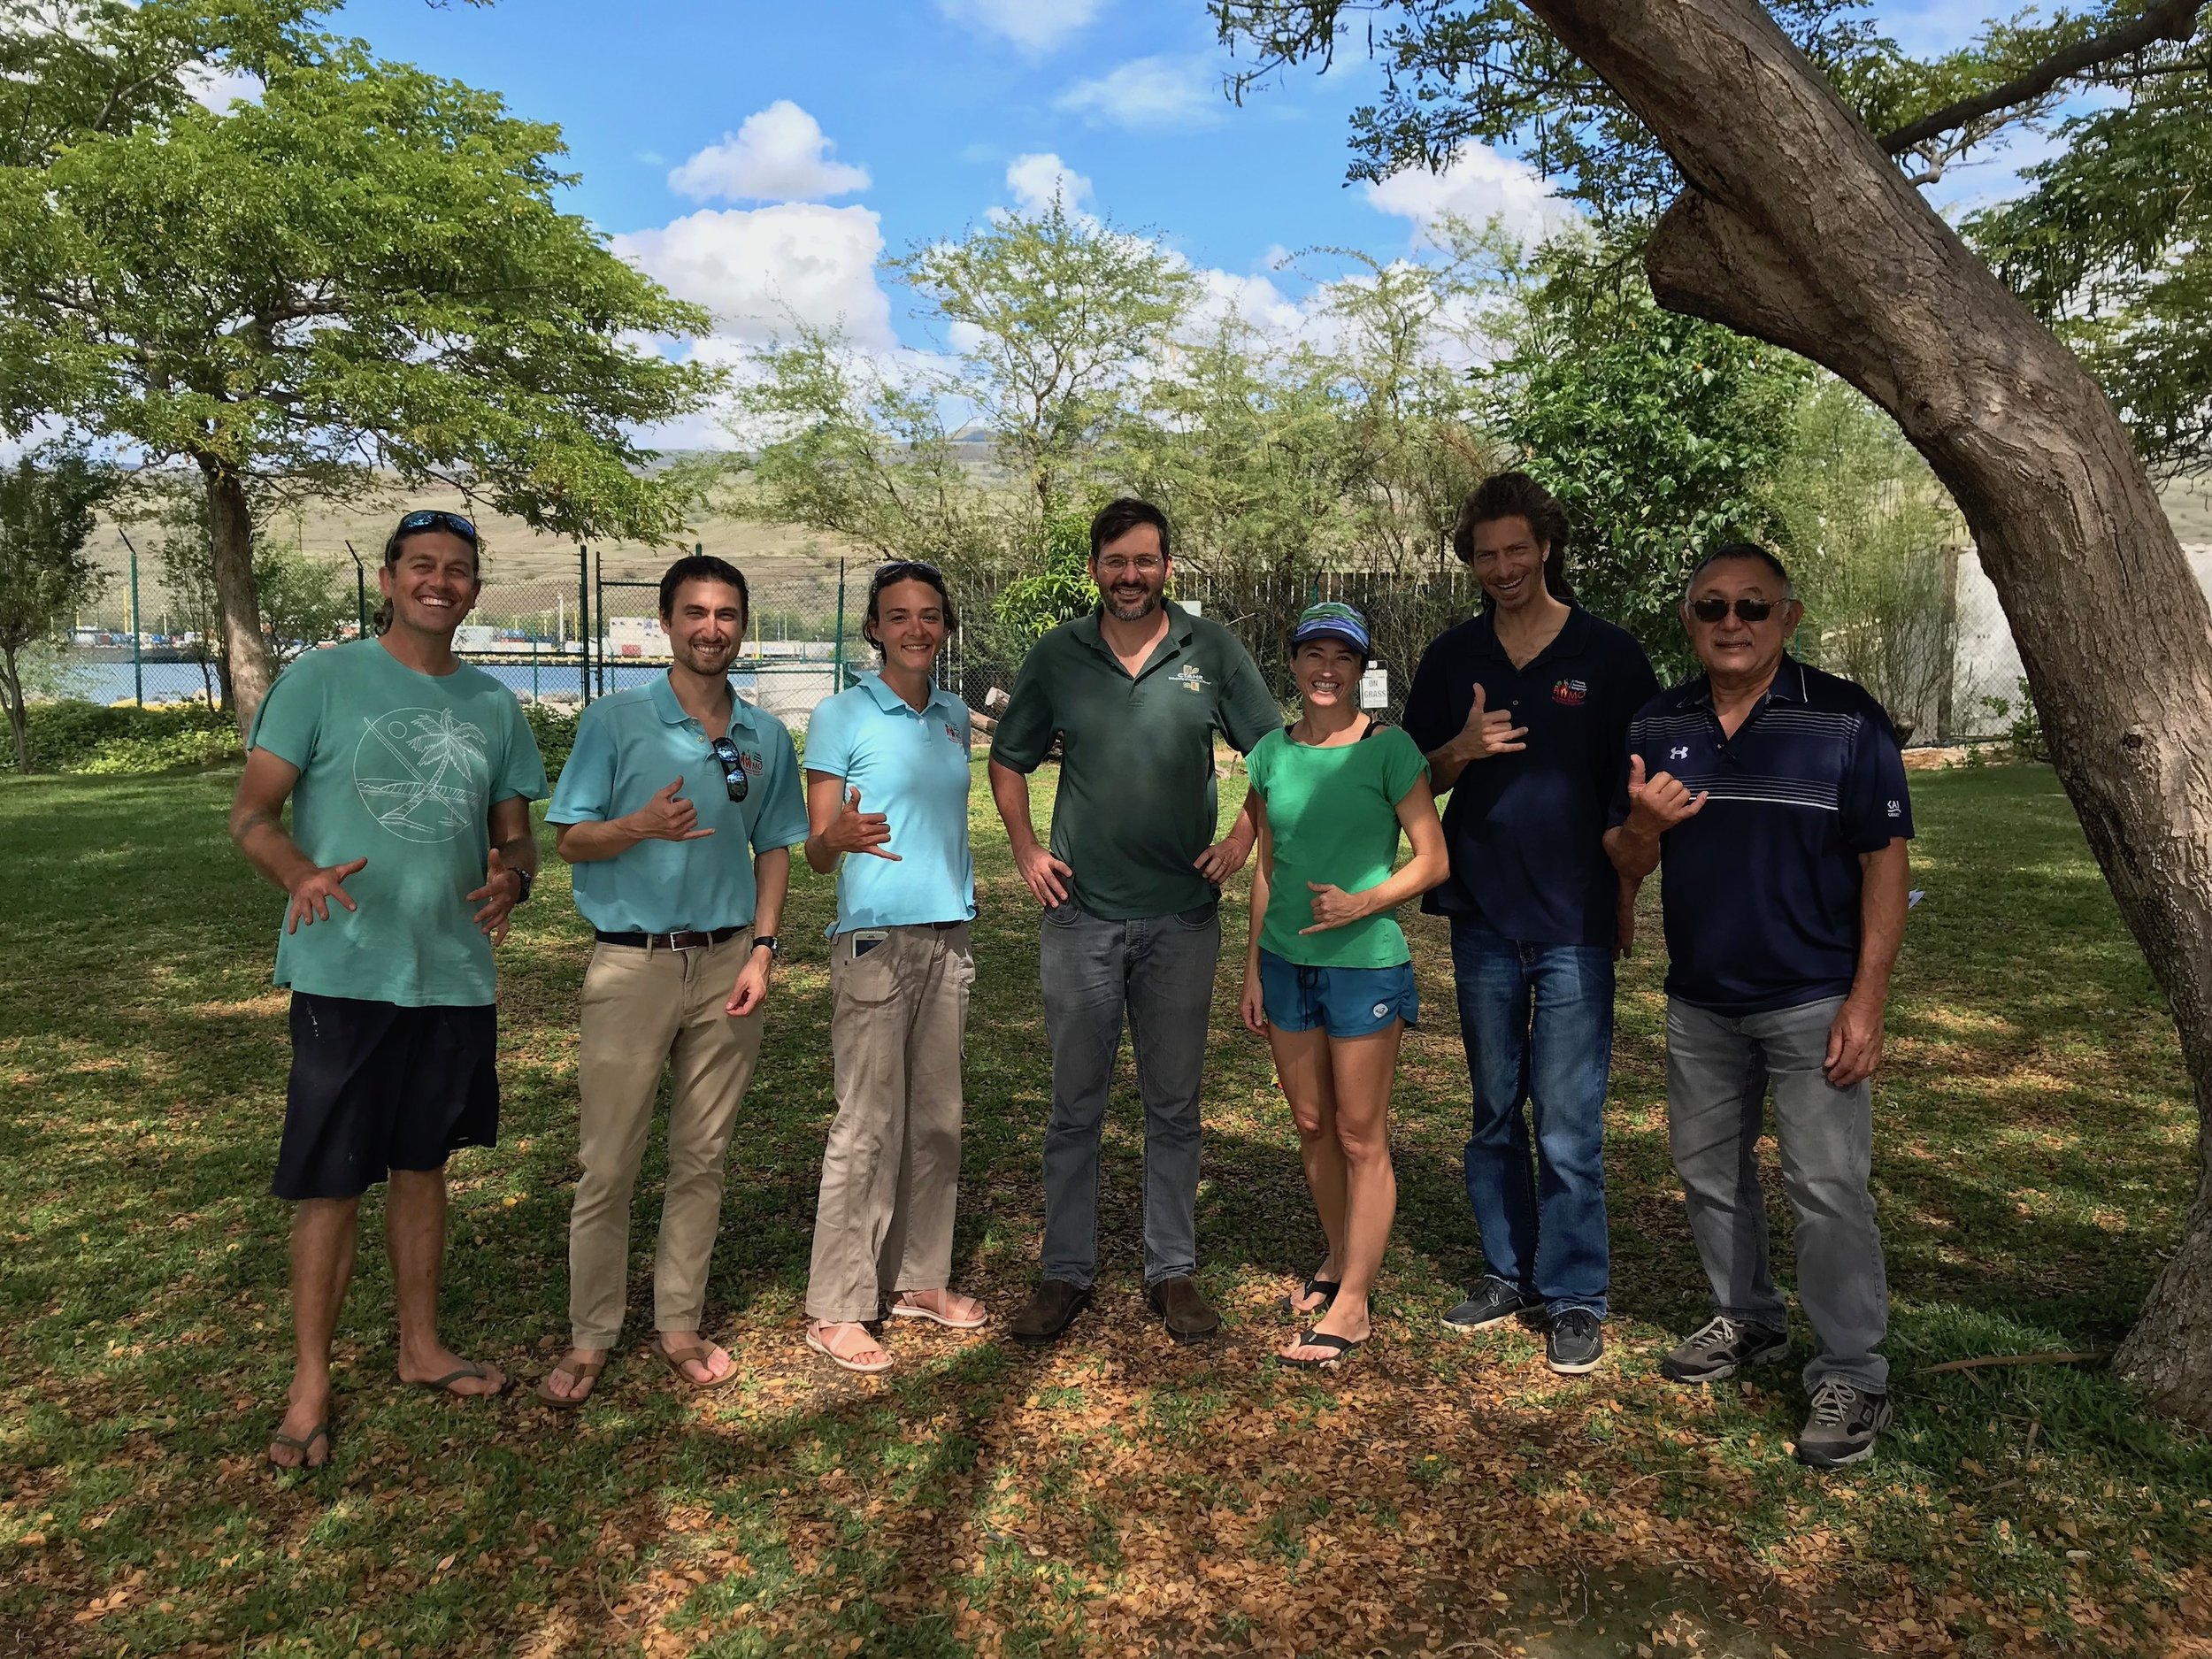 Hawaii Island Kailapa Vegetative Fuels Management Collaborative Action Planning Workshop_2_26_2019_75.jpg